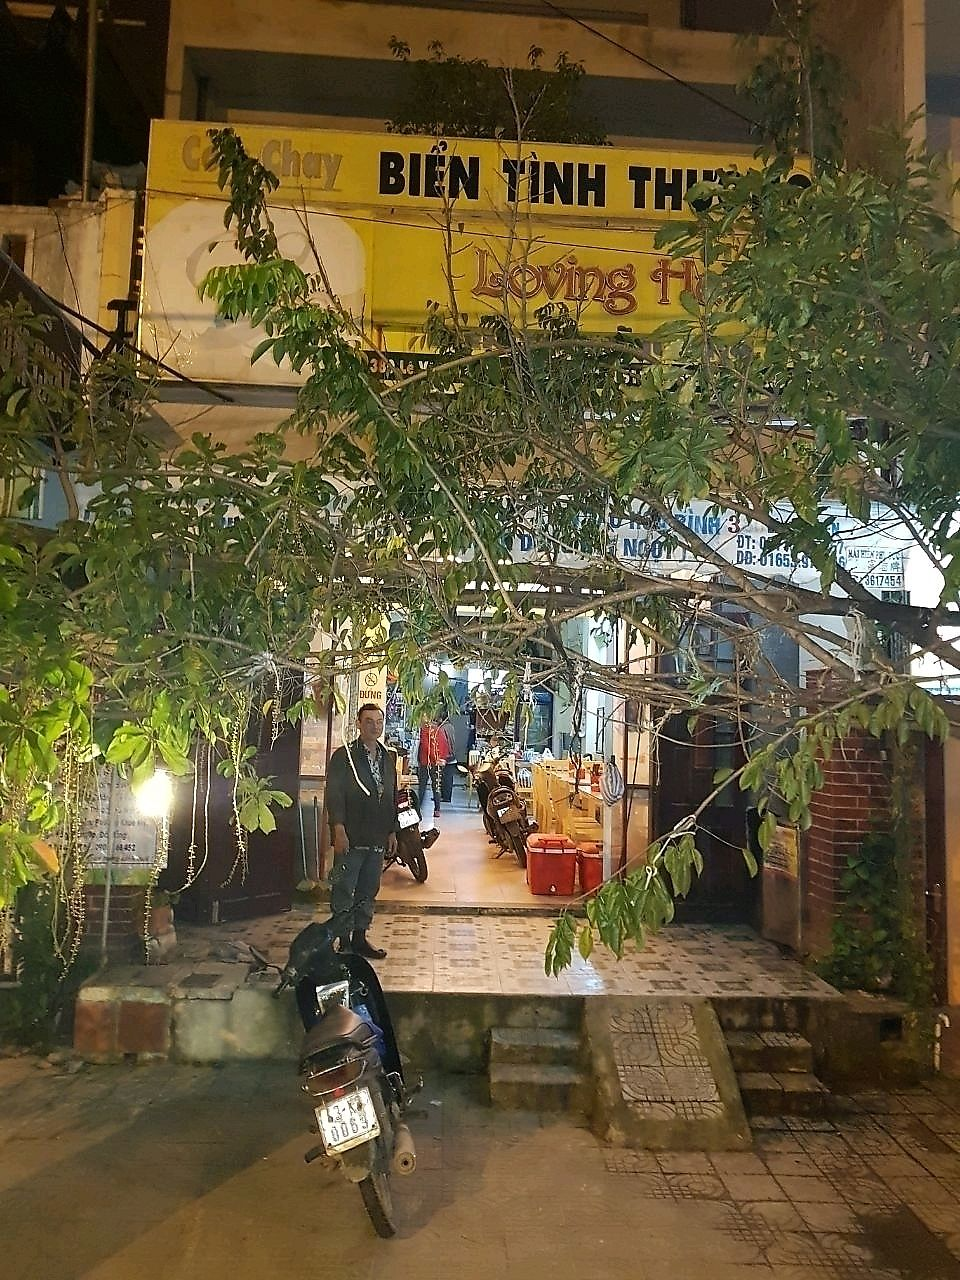 """Photo of Loving Hut - Bien Tinh Thuong  by <a href=""""/members/profile/EnricoVegan"""">EnricoVegan</a> <br/>loving hut store front is covered by huge tree <br/> December 21, 2017  - <a href='/contact/abuse/image/36503/337688'>Report</a>"""